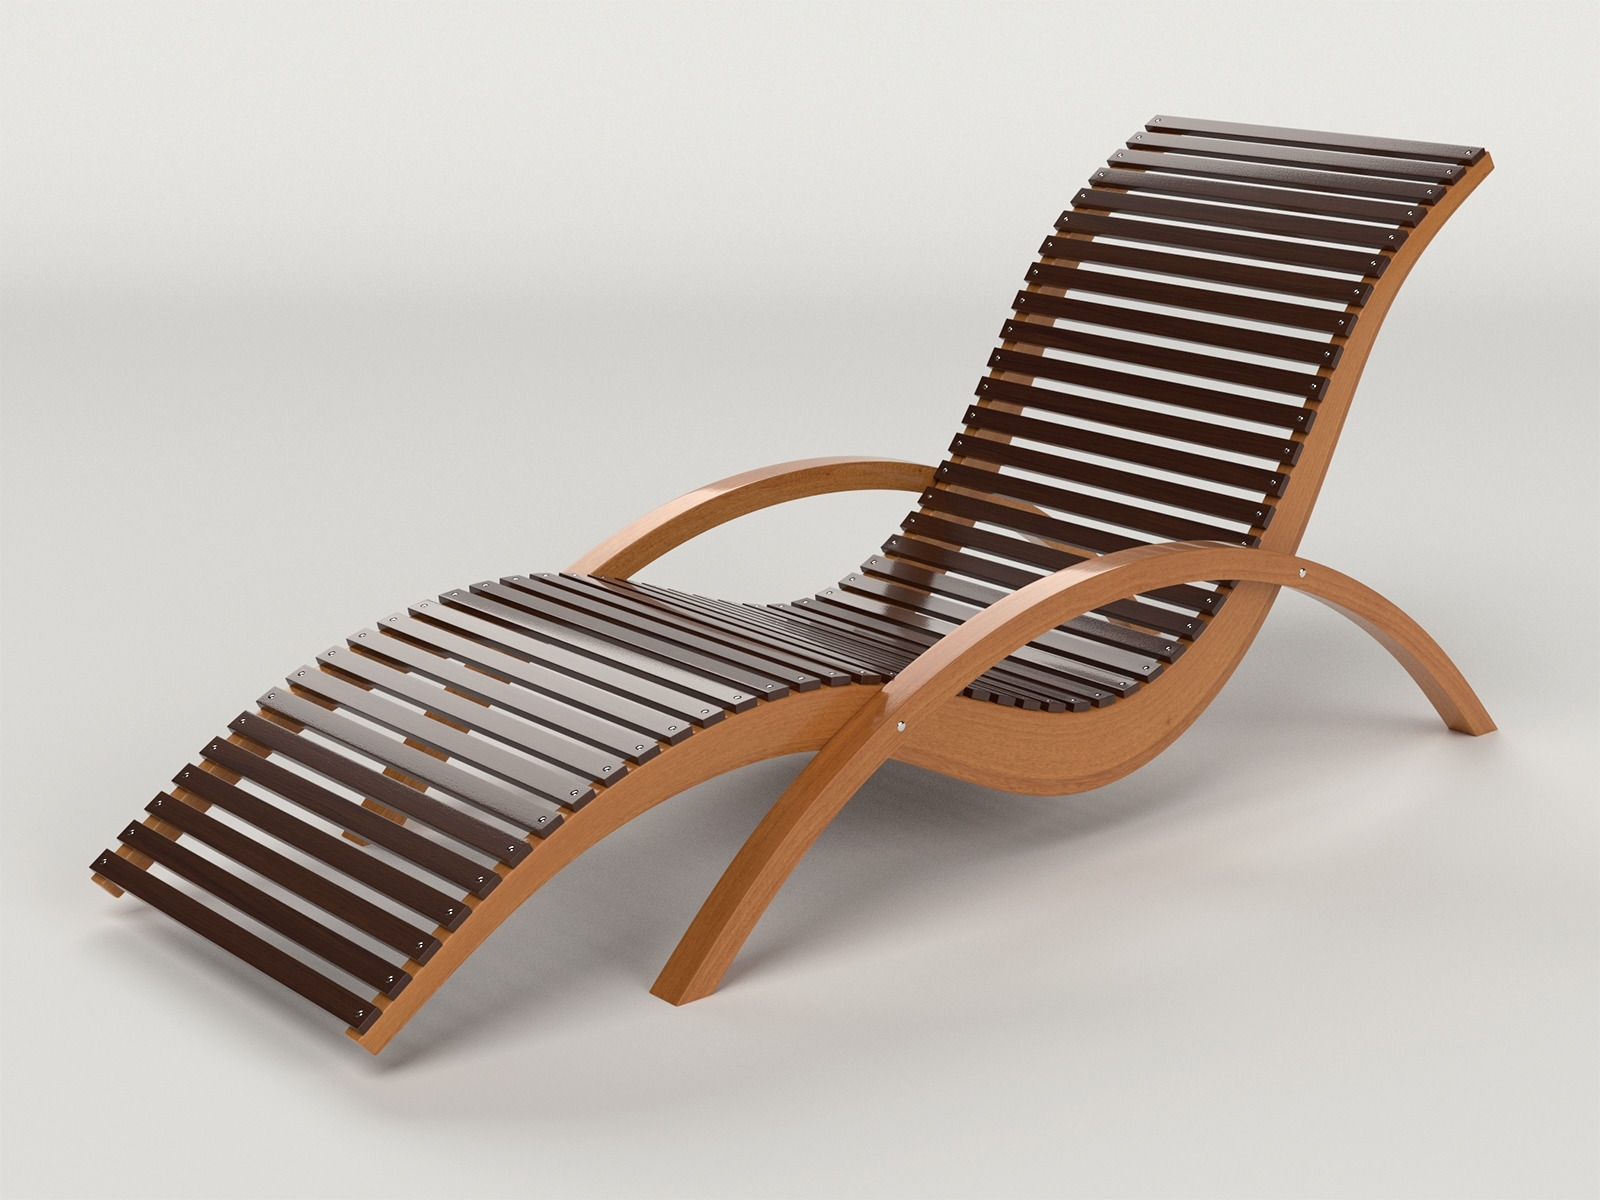 Best And Newest Lounge Chair : Outdoor Mesh Chaise Lounge Chairs Outside Chaise Regarding Wooden Outdoor Chaise Lounge Chairs (View 14 of 15)